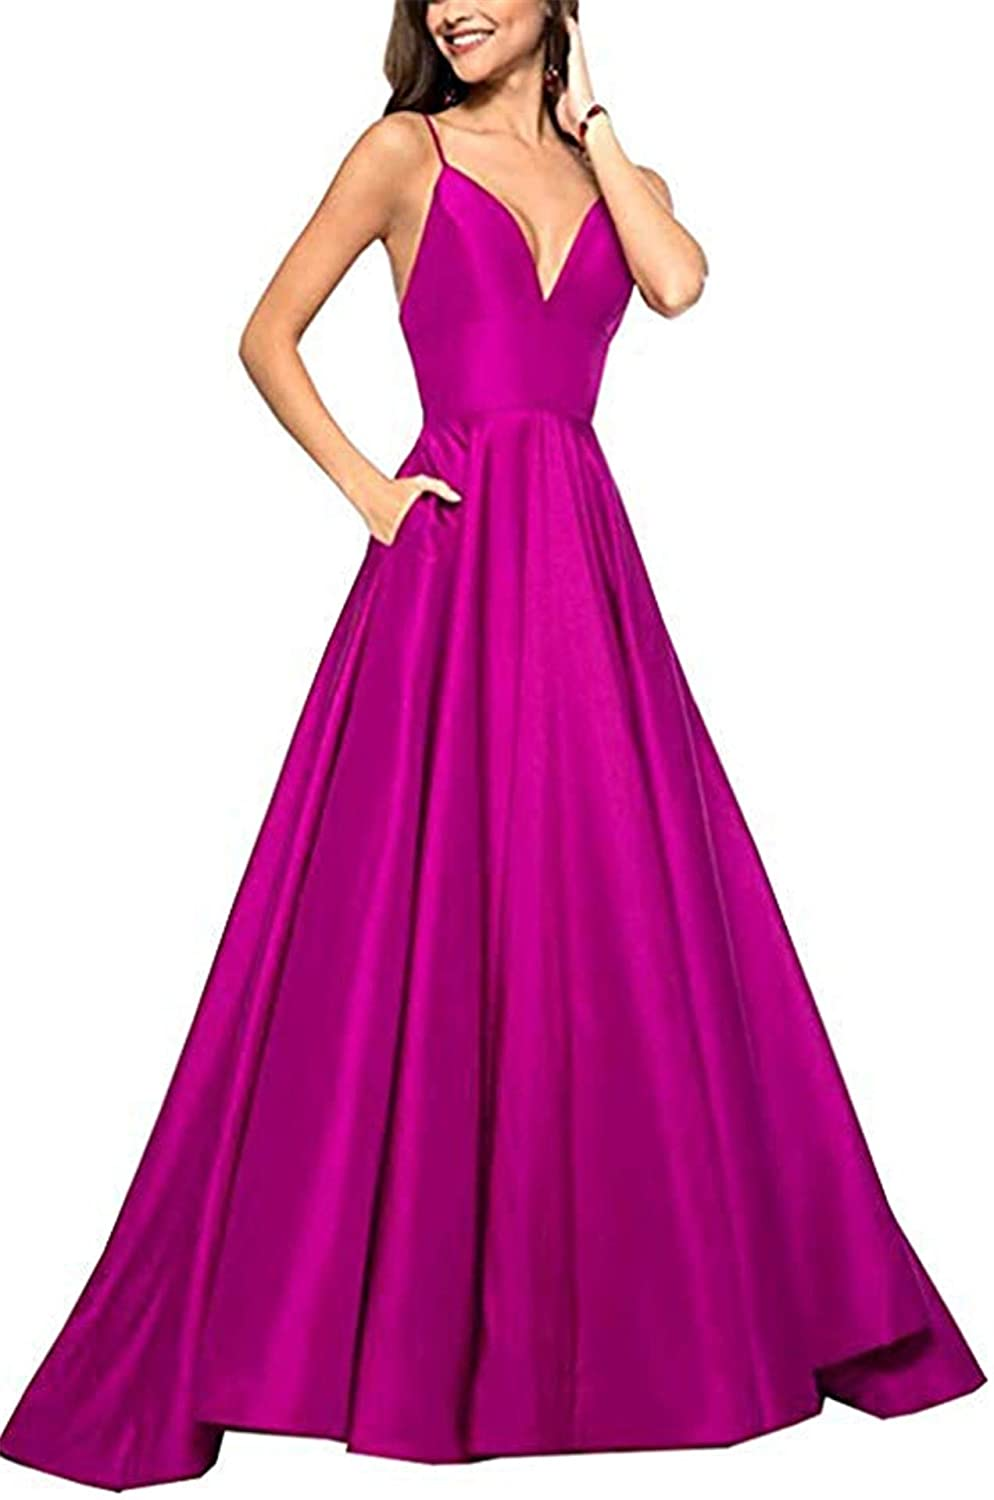 Fuchsia QiJunGe V Neck Evening Party Gown A Line Spaghetti Strap Prom Dress with Pocket